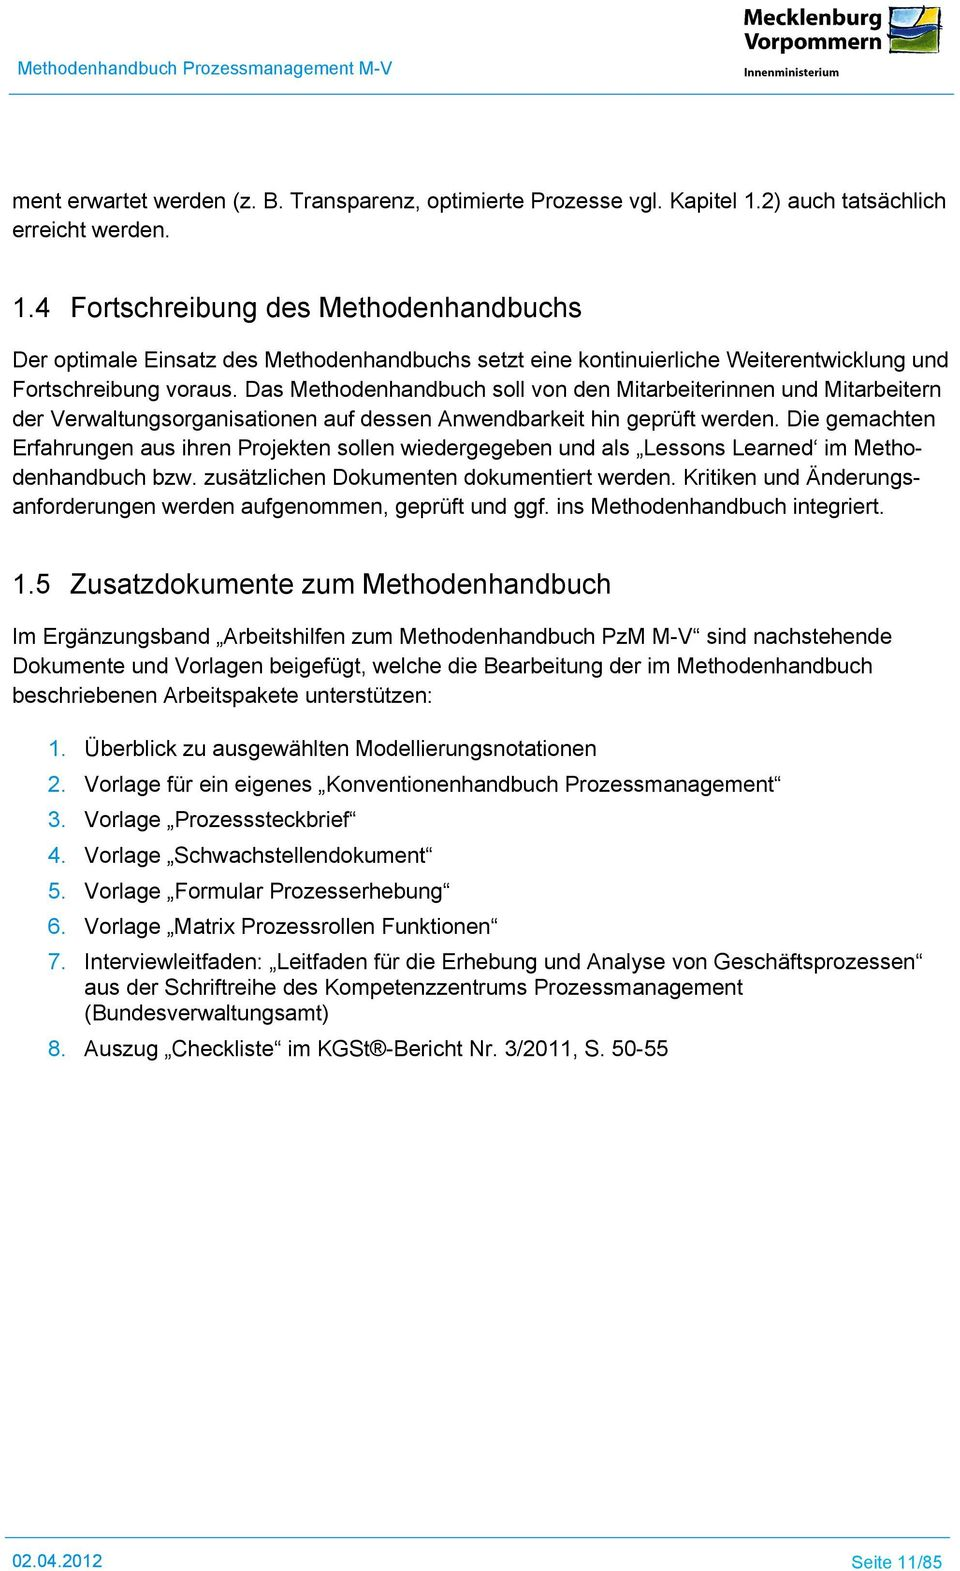 Methodenhandbuch Prozessmanagement M-V - PDF